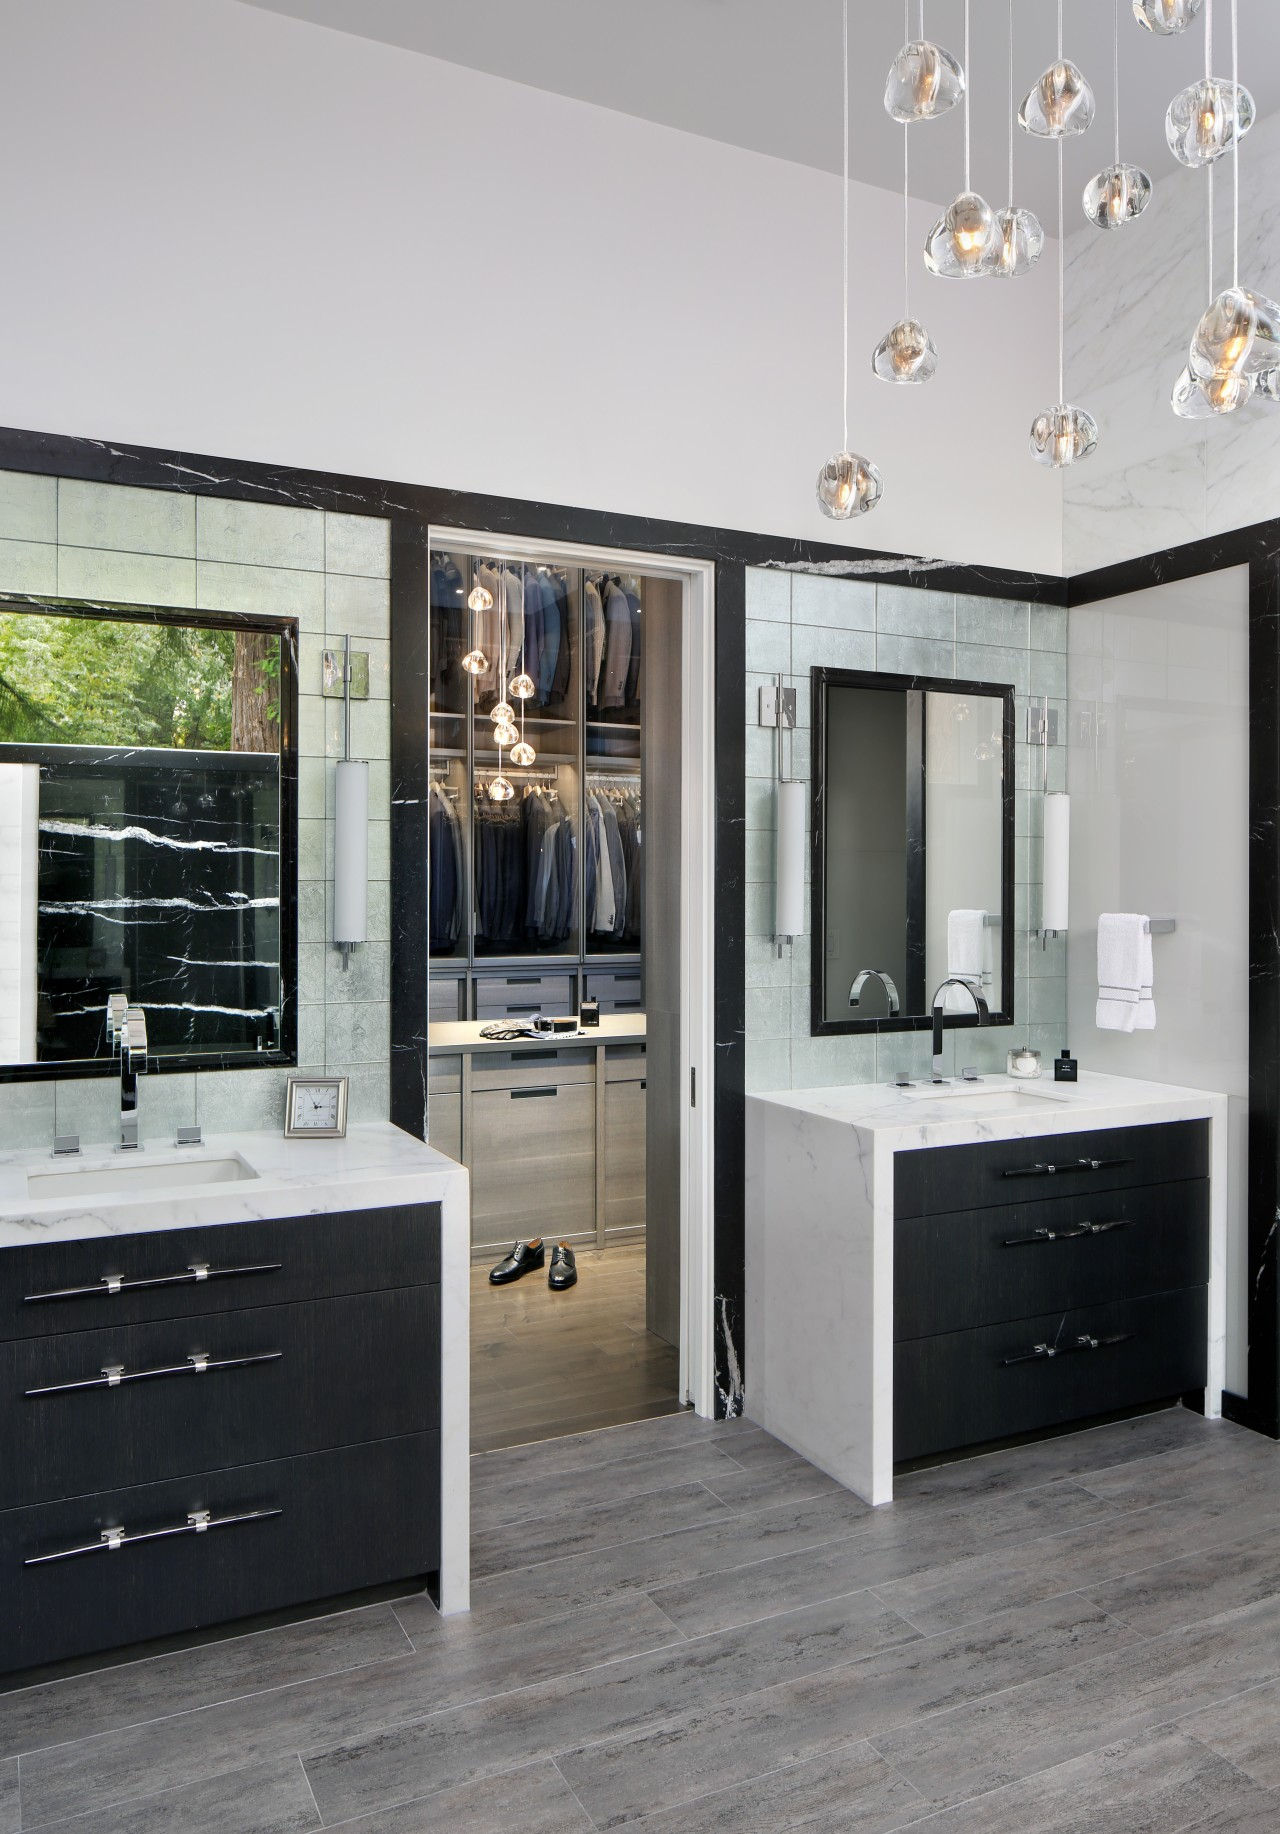 As part of a whole bathroom renovation by countertop, floor, flooring, home appliance, interior design, kitchen, gray